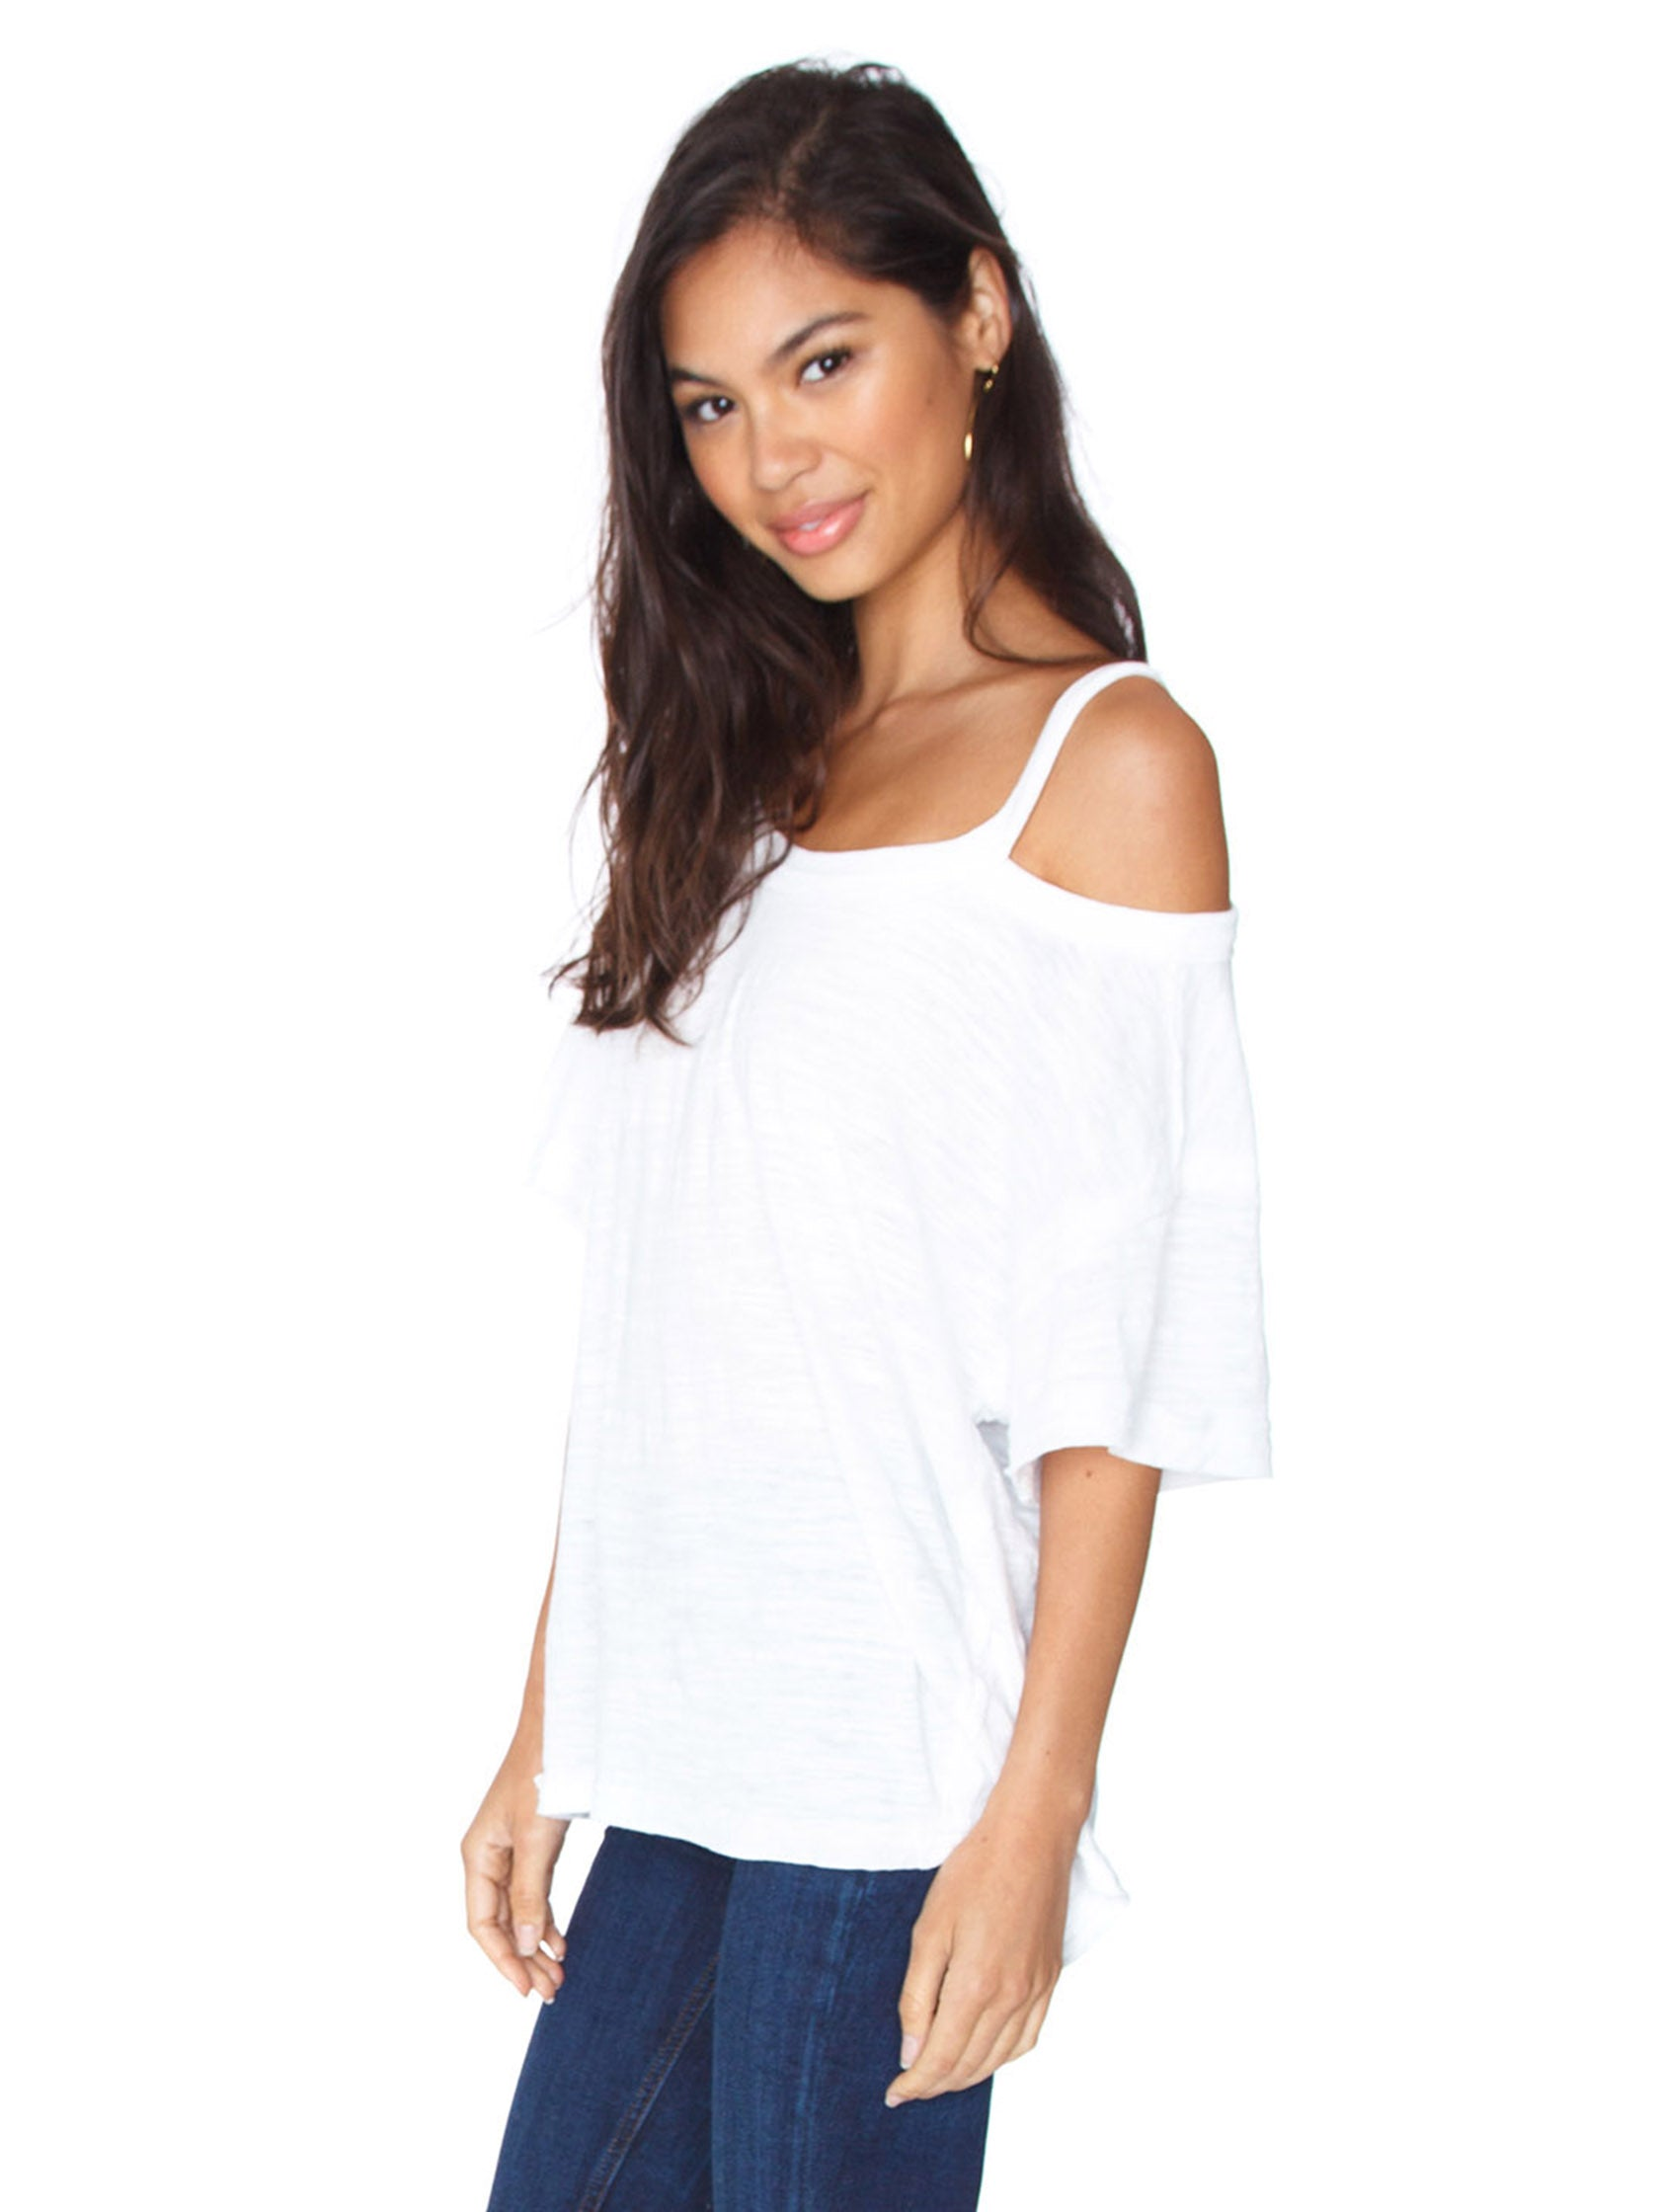 Women wearing a top rental from Free People called Alex Tee